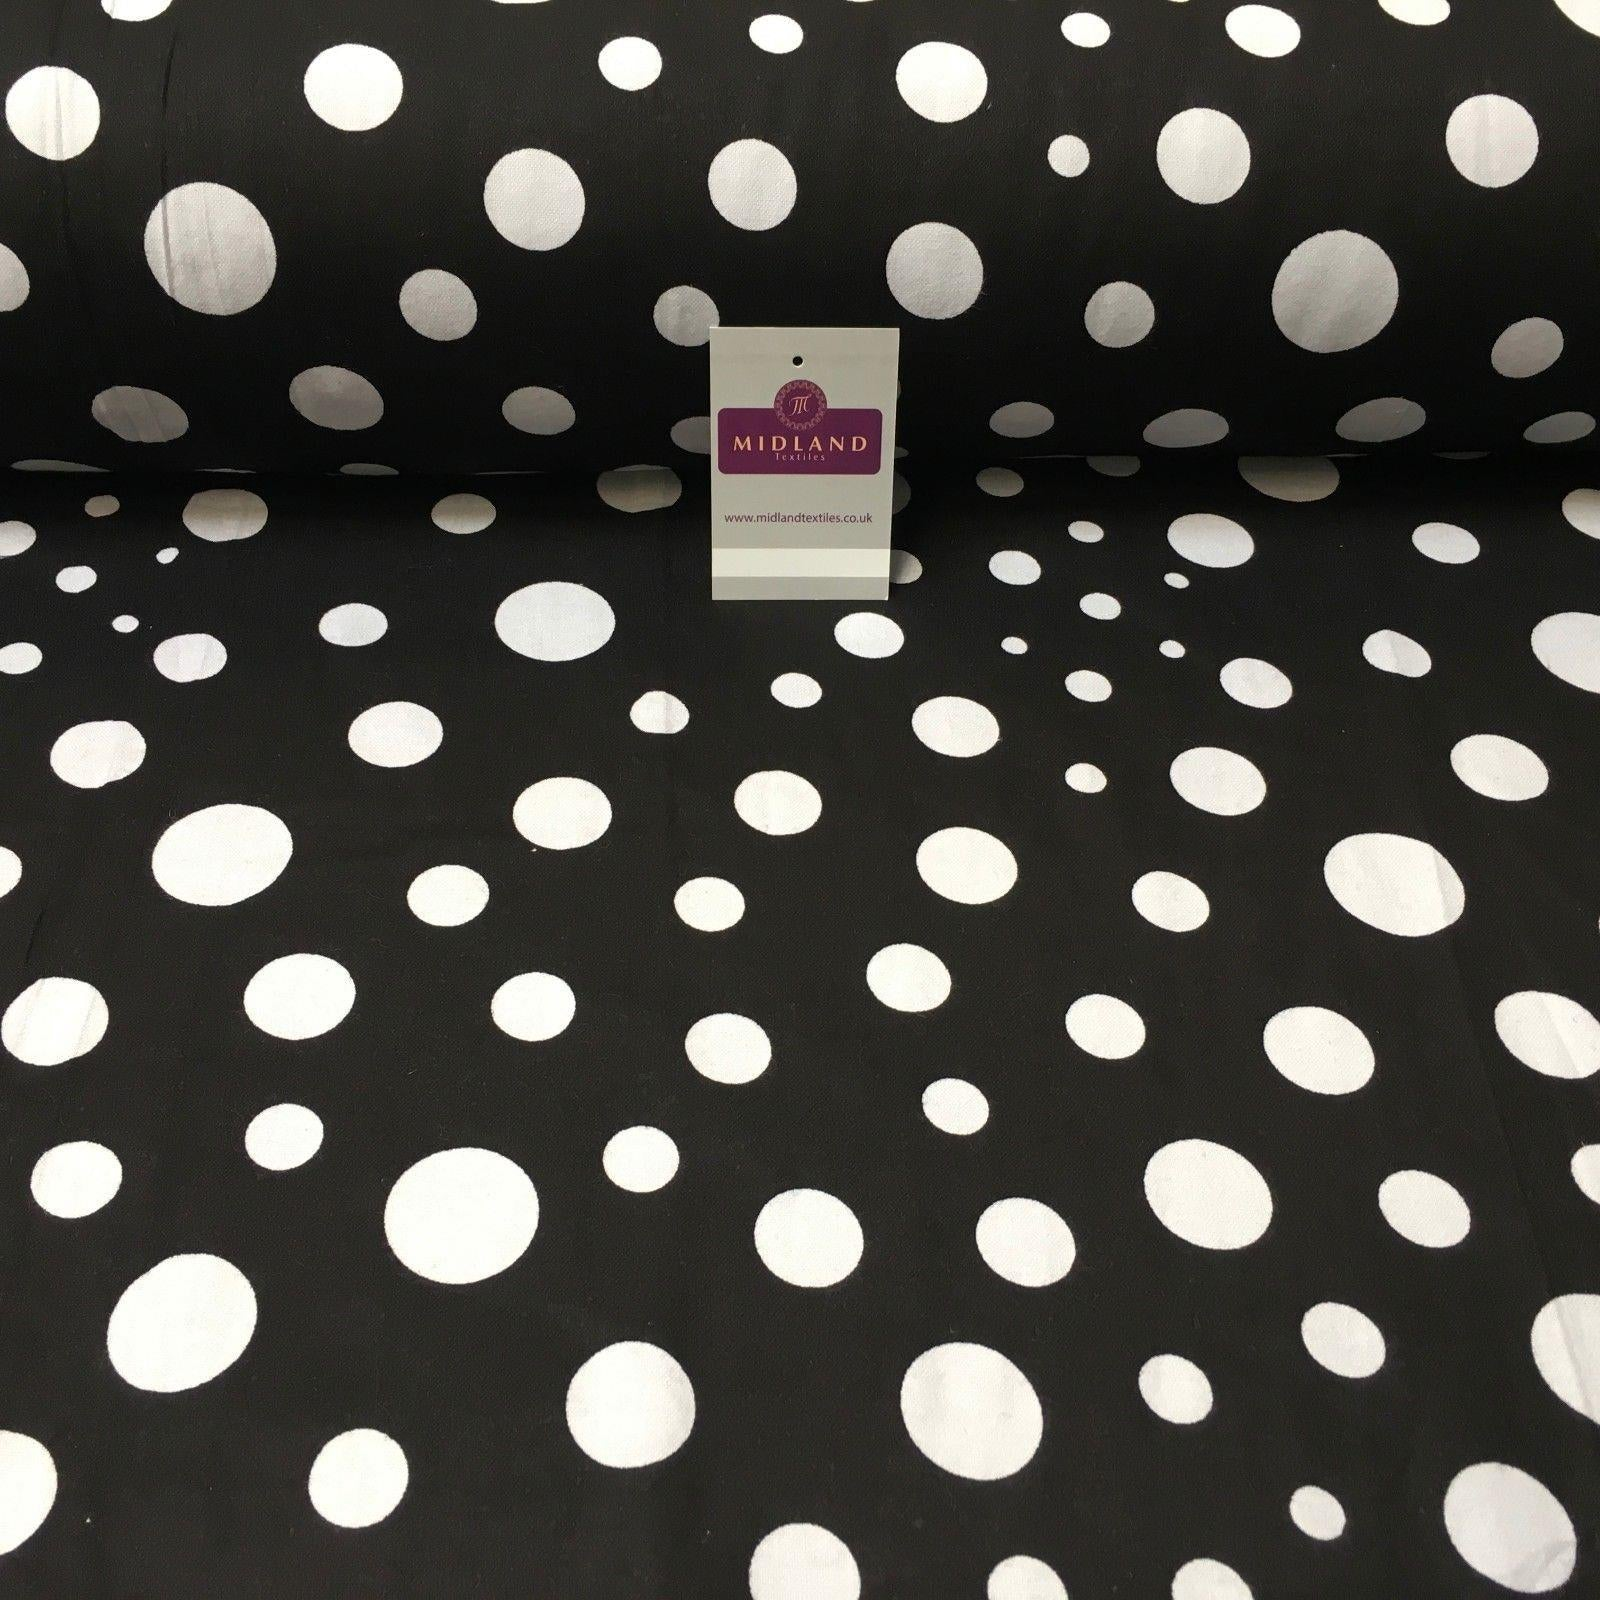 Black Large Spots Cotton Wynciette Soft Brushed Flannel Fabric MK988-6